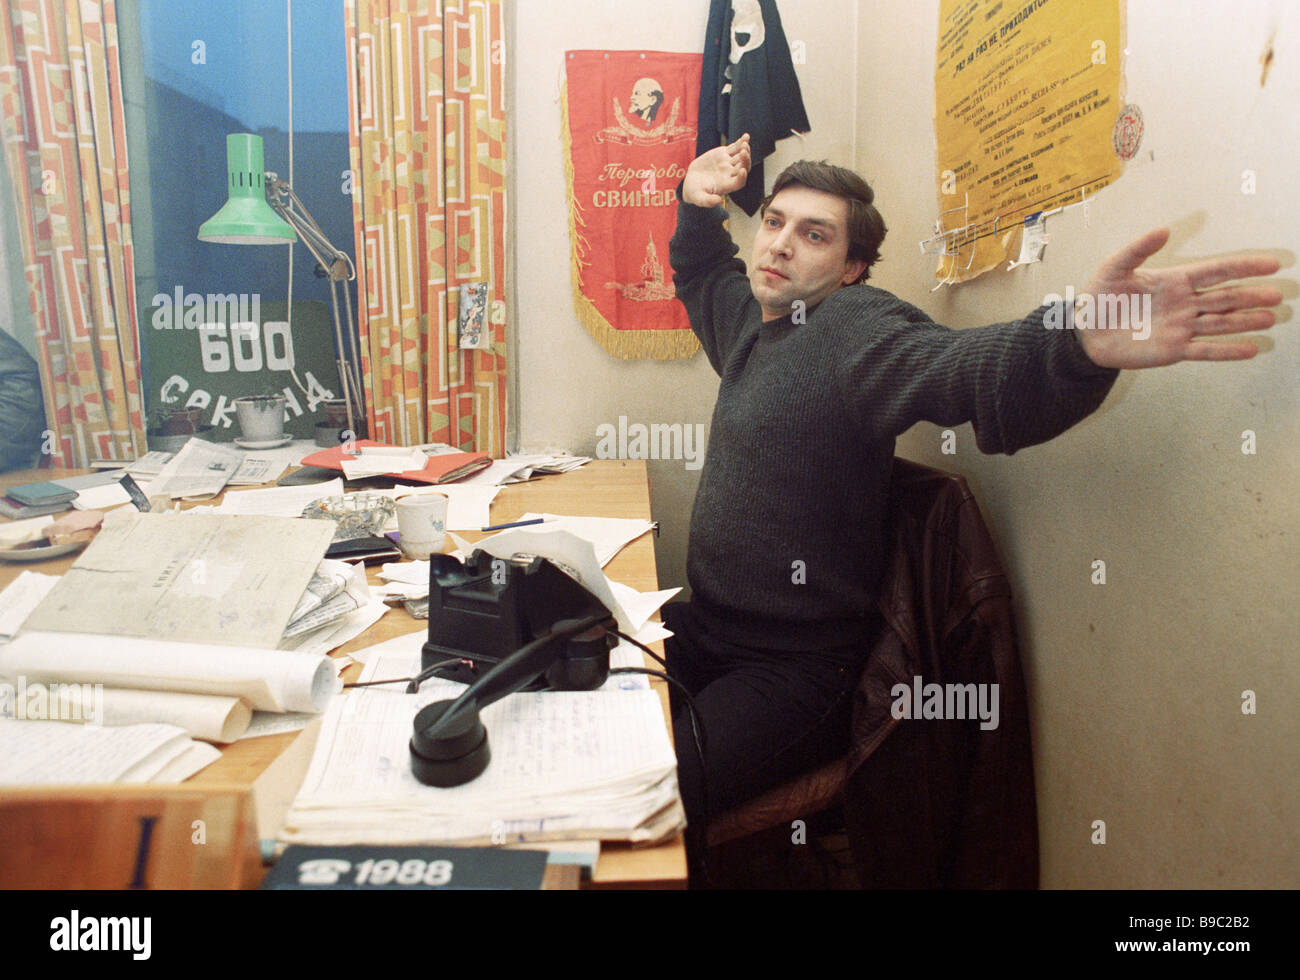 Alexander Nevzorov the host of the 600 Seconds TV program in his office - Stock Image